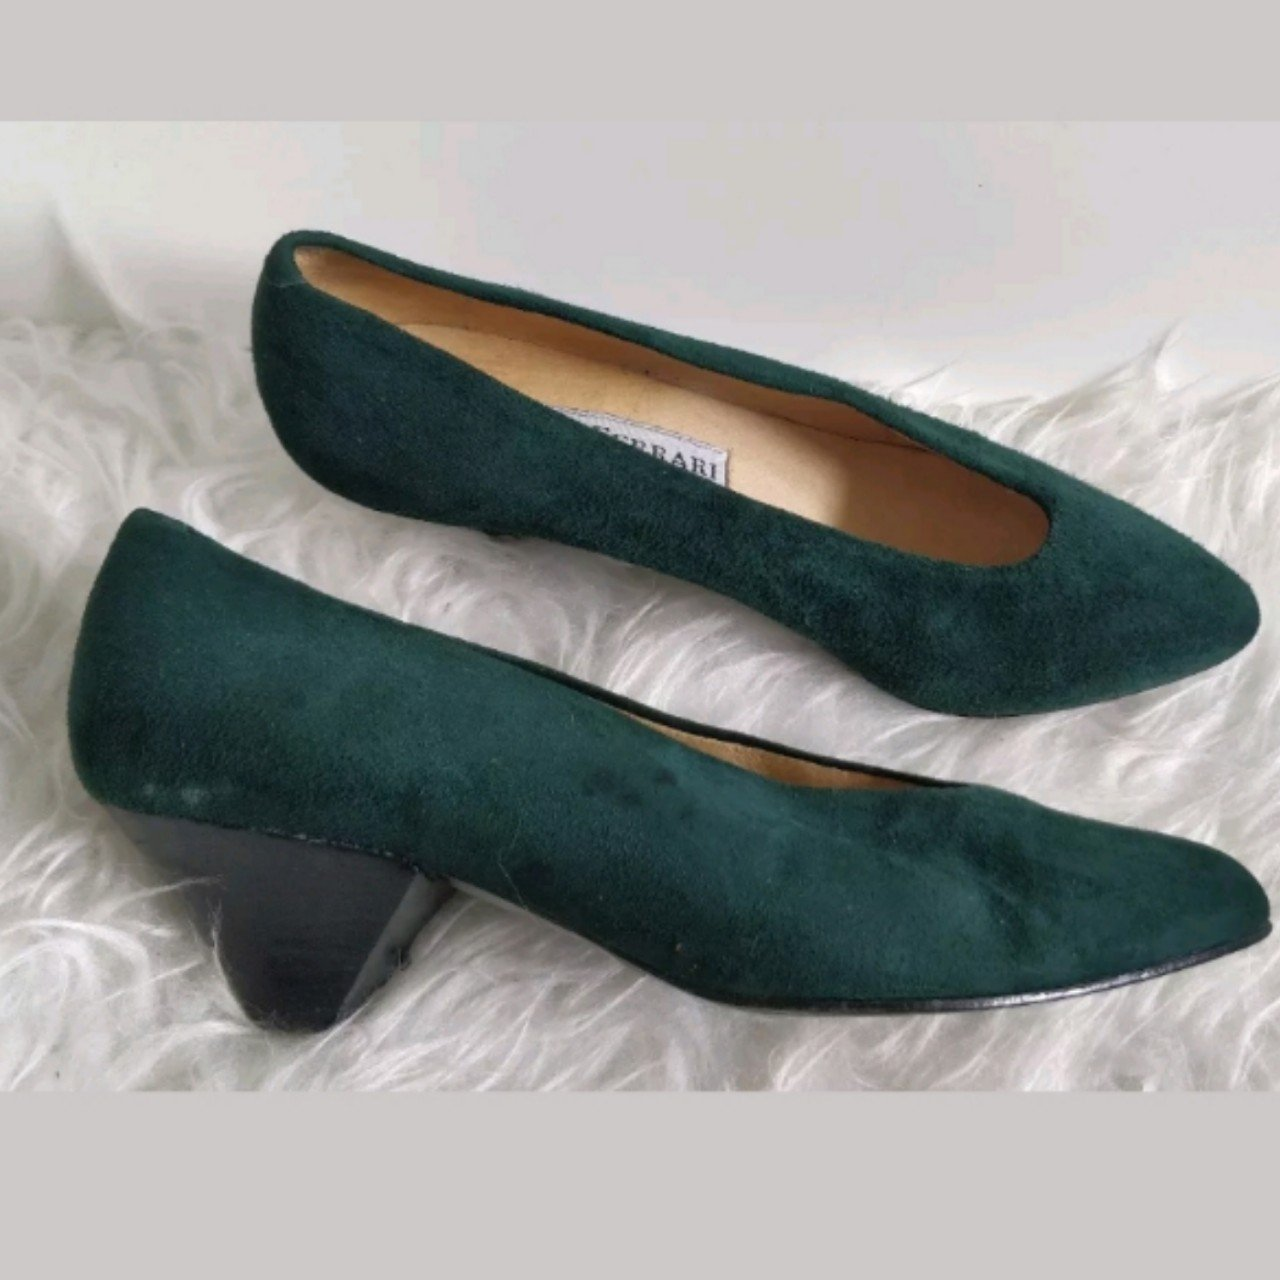 Vintage Paola Ferrari Womens Green Suede Court Shoes Size - Depop 1ac75cf28